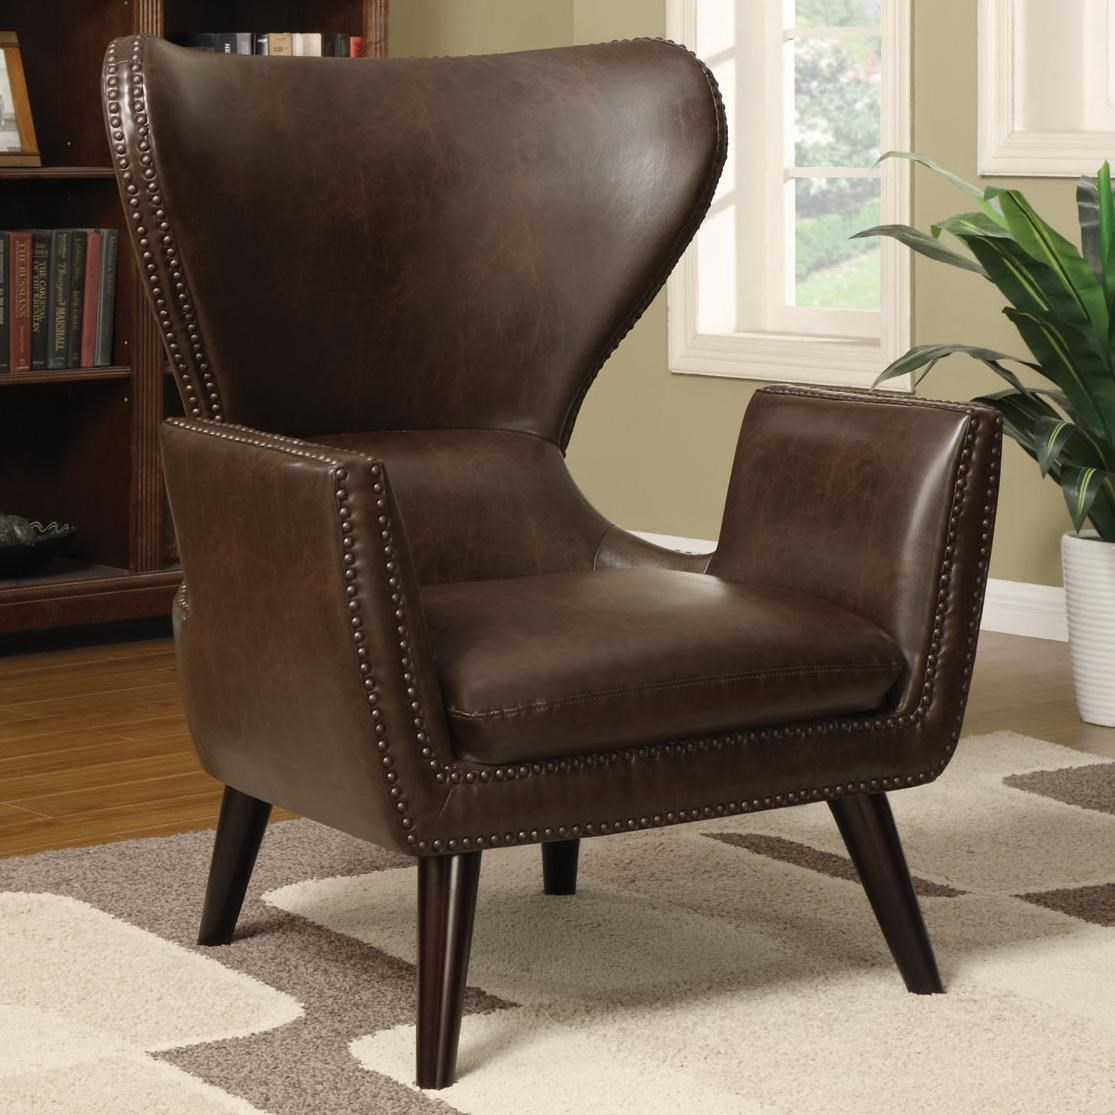 Coaster Accent Seating Transitional Accent Chair   Coaster Fine Furniture